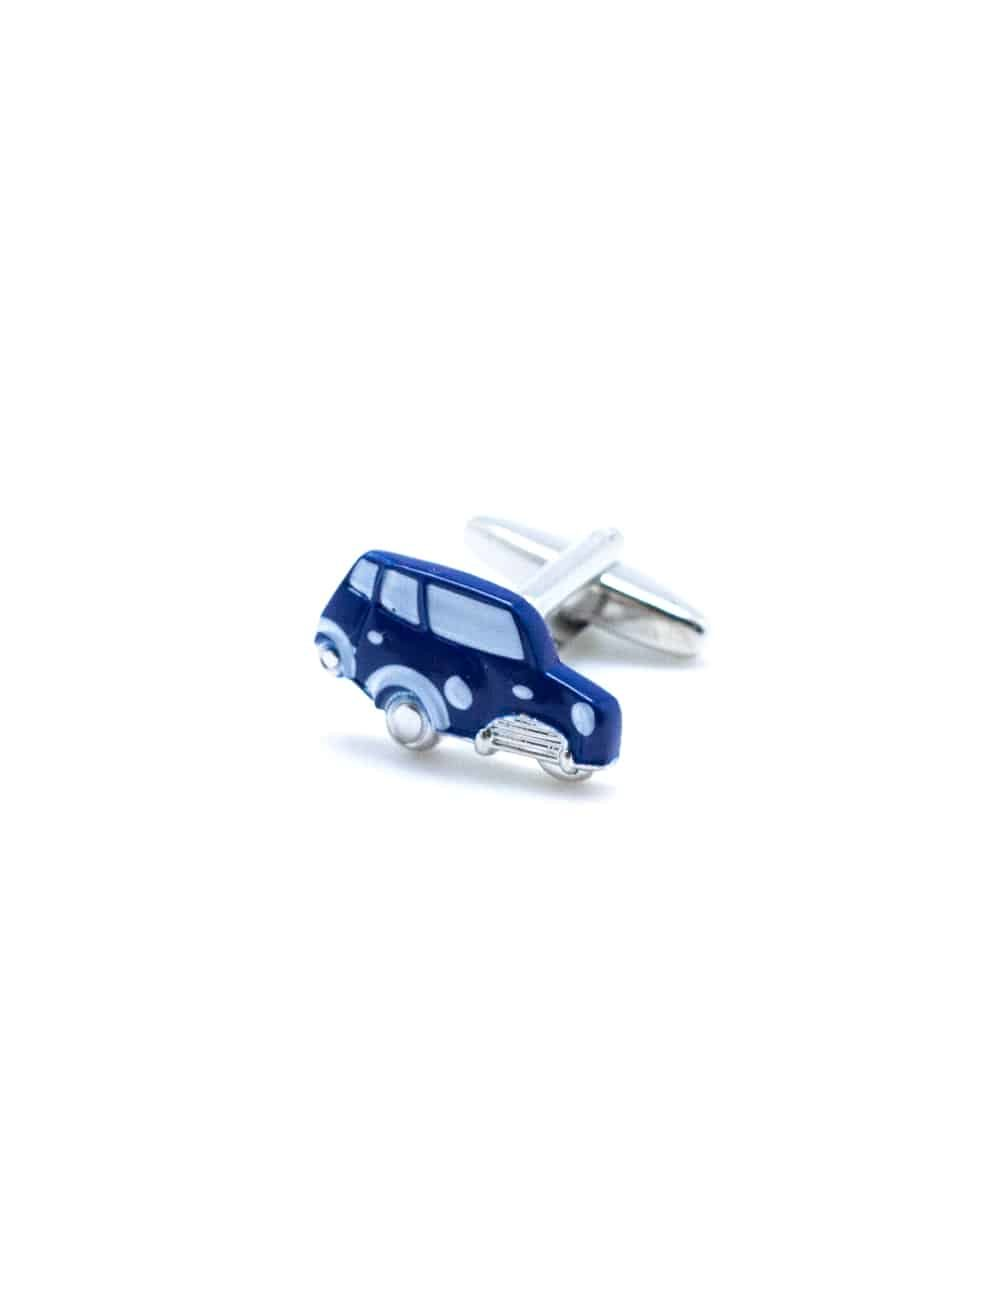 Blue colored mini car cufflink with silver chrome accents 0102-010